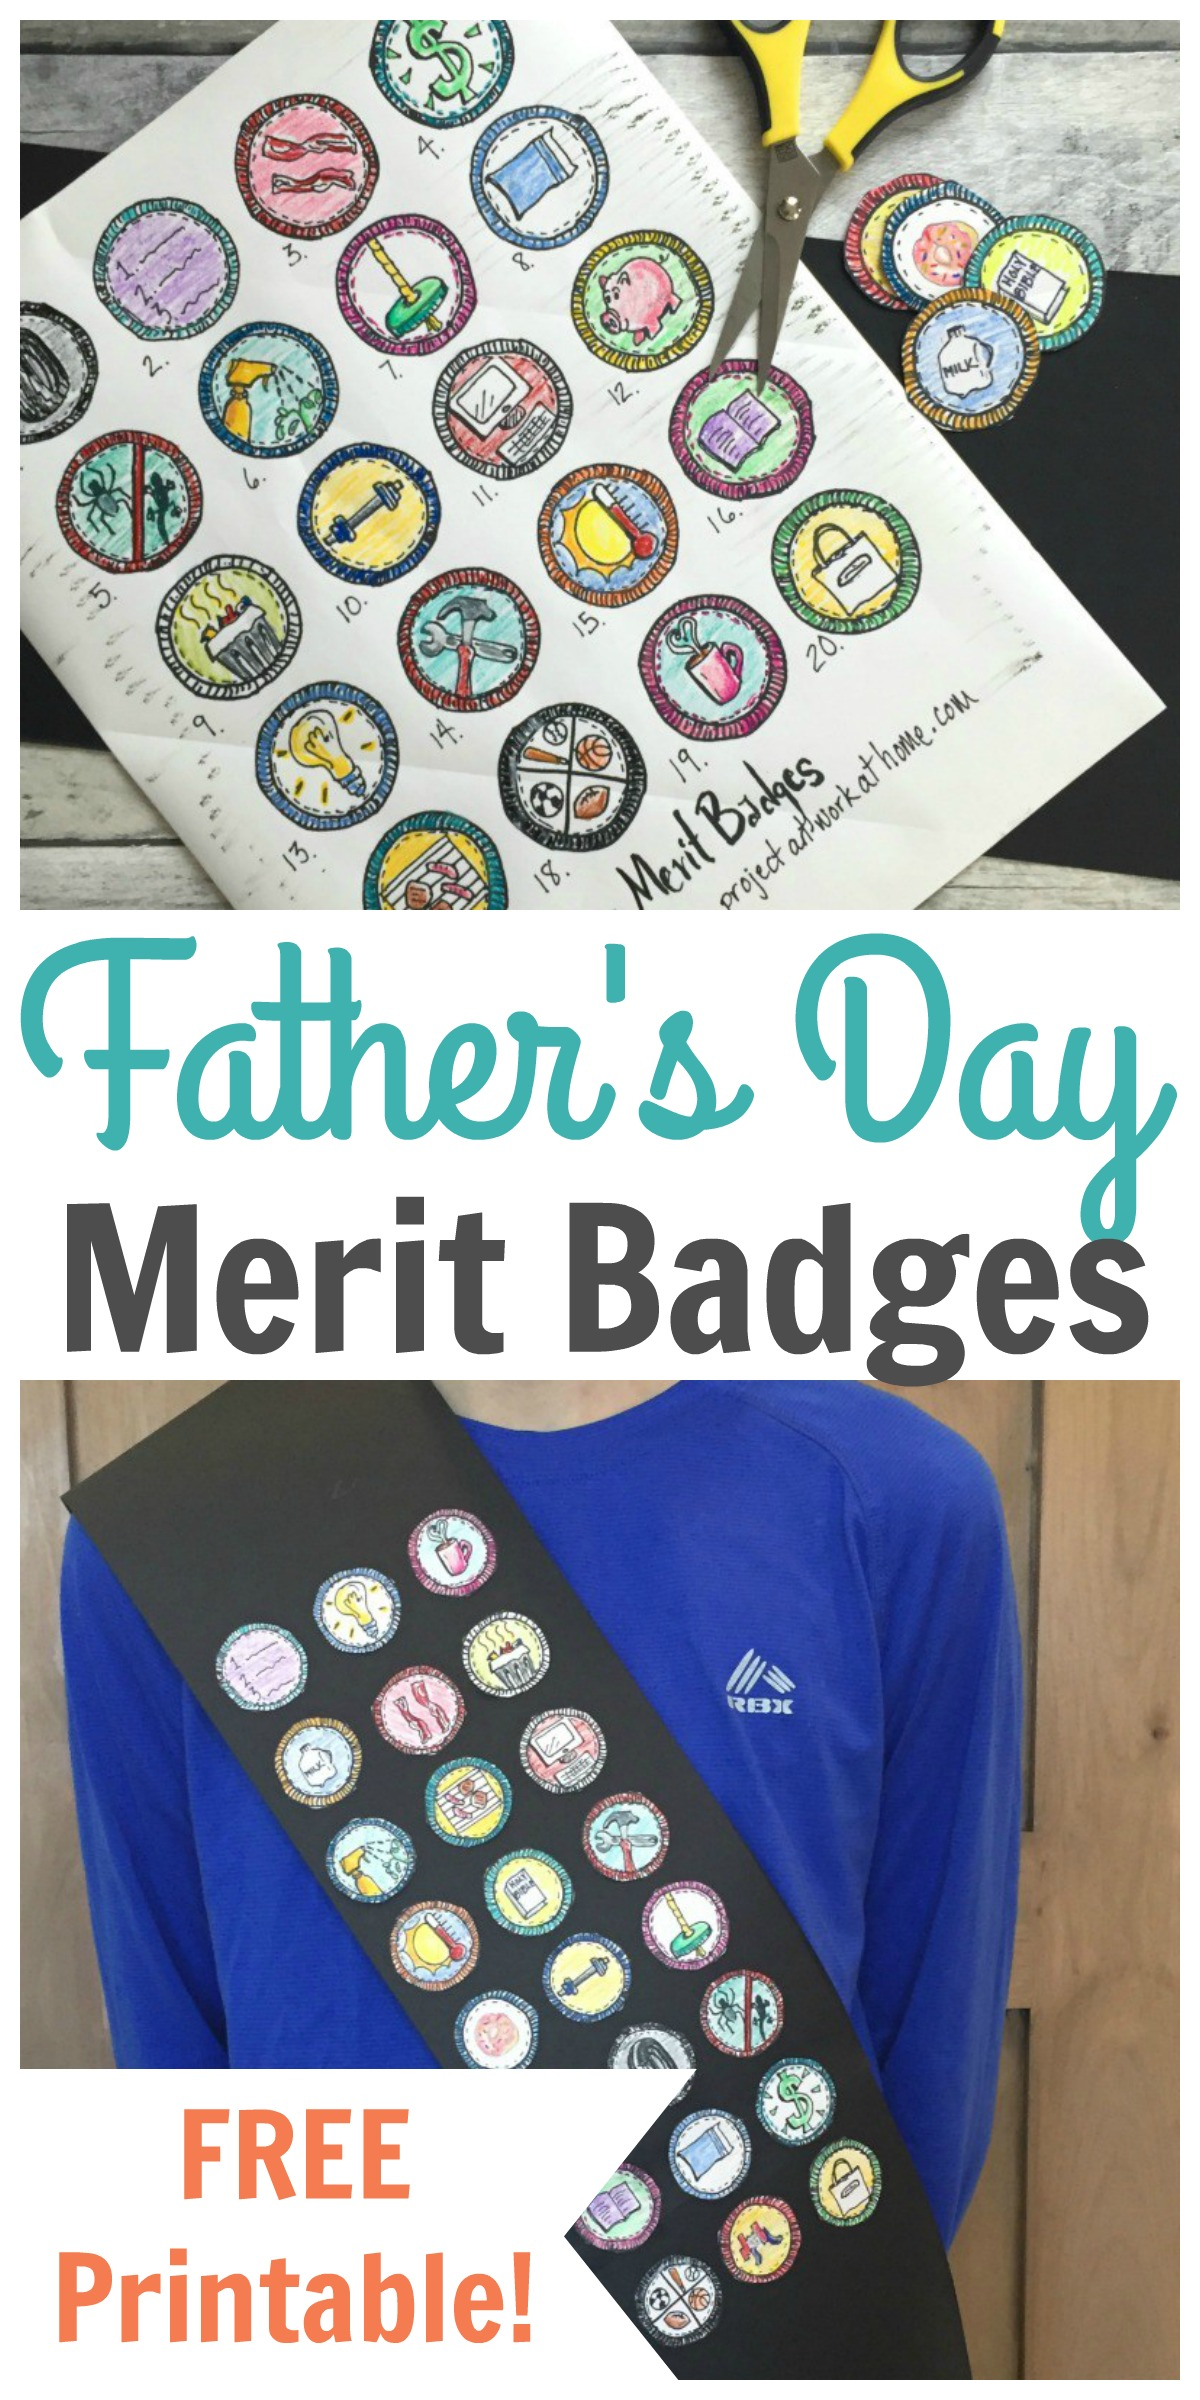 image regarding Printable List of Merit Badges known as Fathers Working day Advantage Badges - Totally free Printable! - Content House Fairy